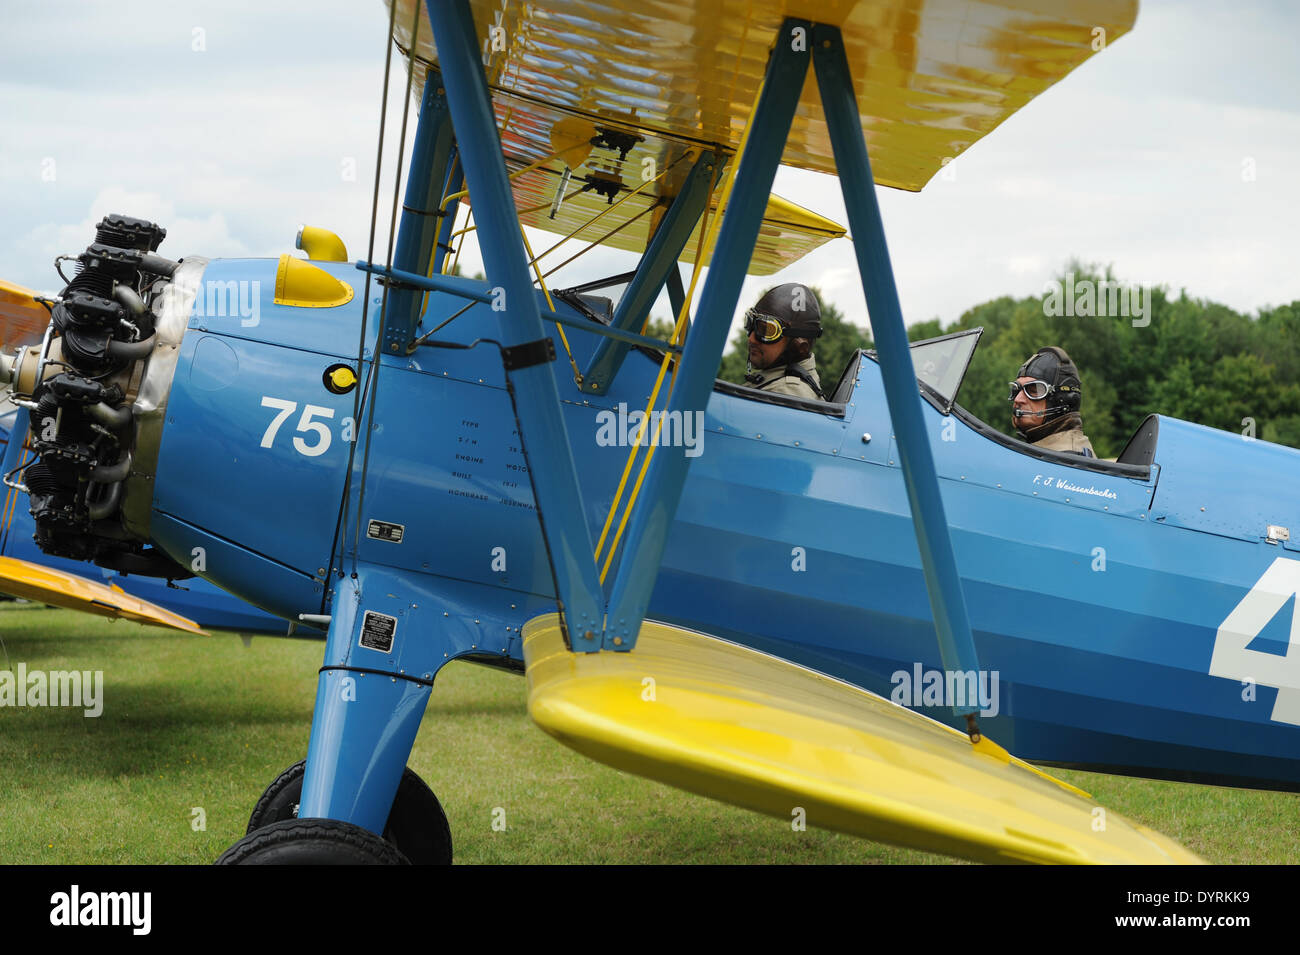 Fly-in on the 100th anniversary of the Schleissheim Airport, 2012 Stock Photo